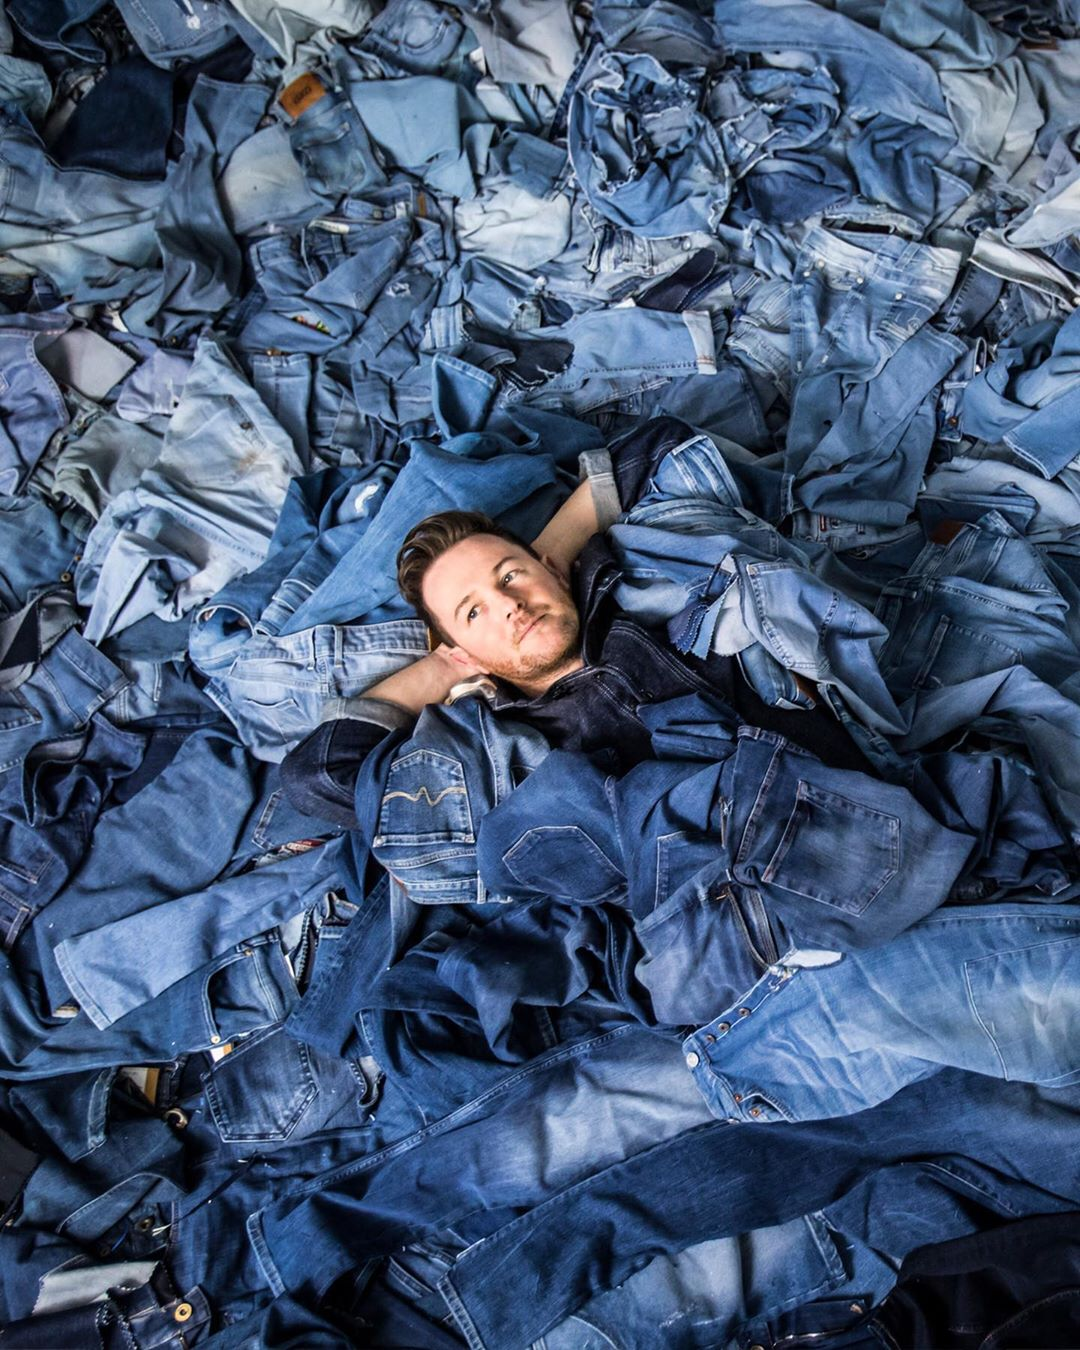 Artist Creates Stunning Works Of Art From Pieces Cut Out Of Denim Jeans 4